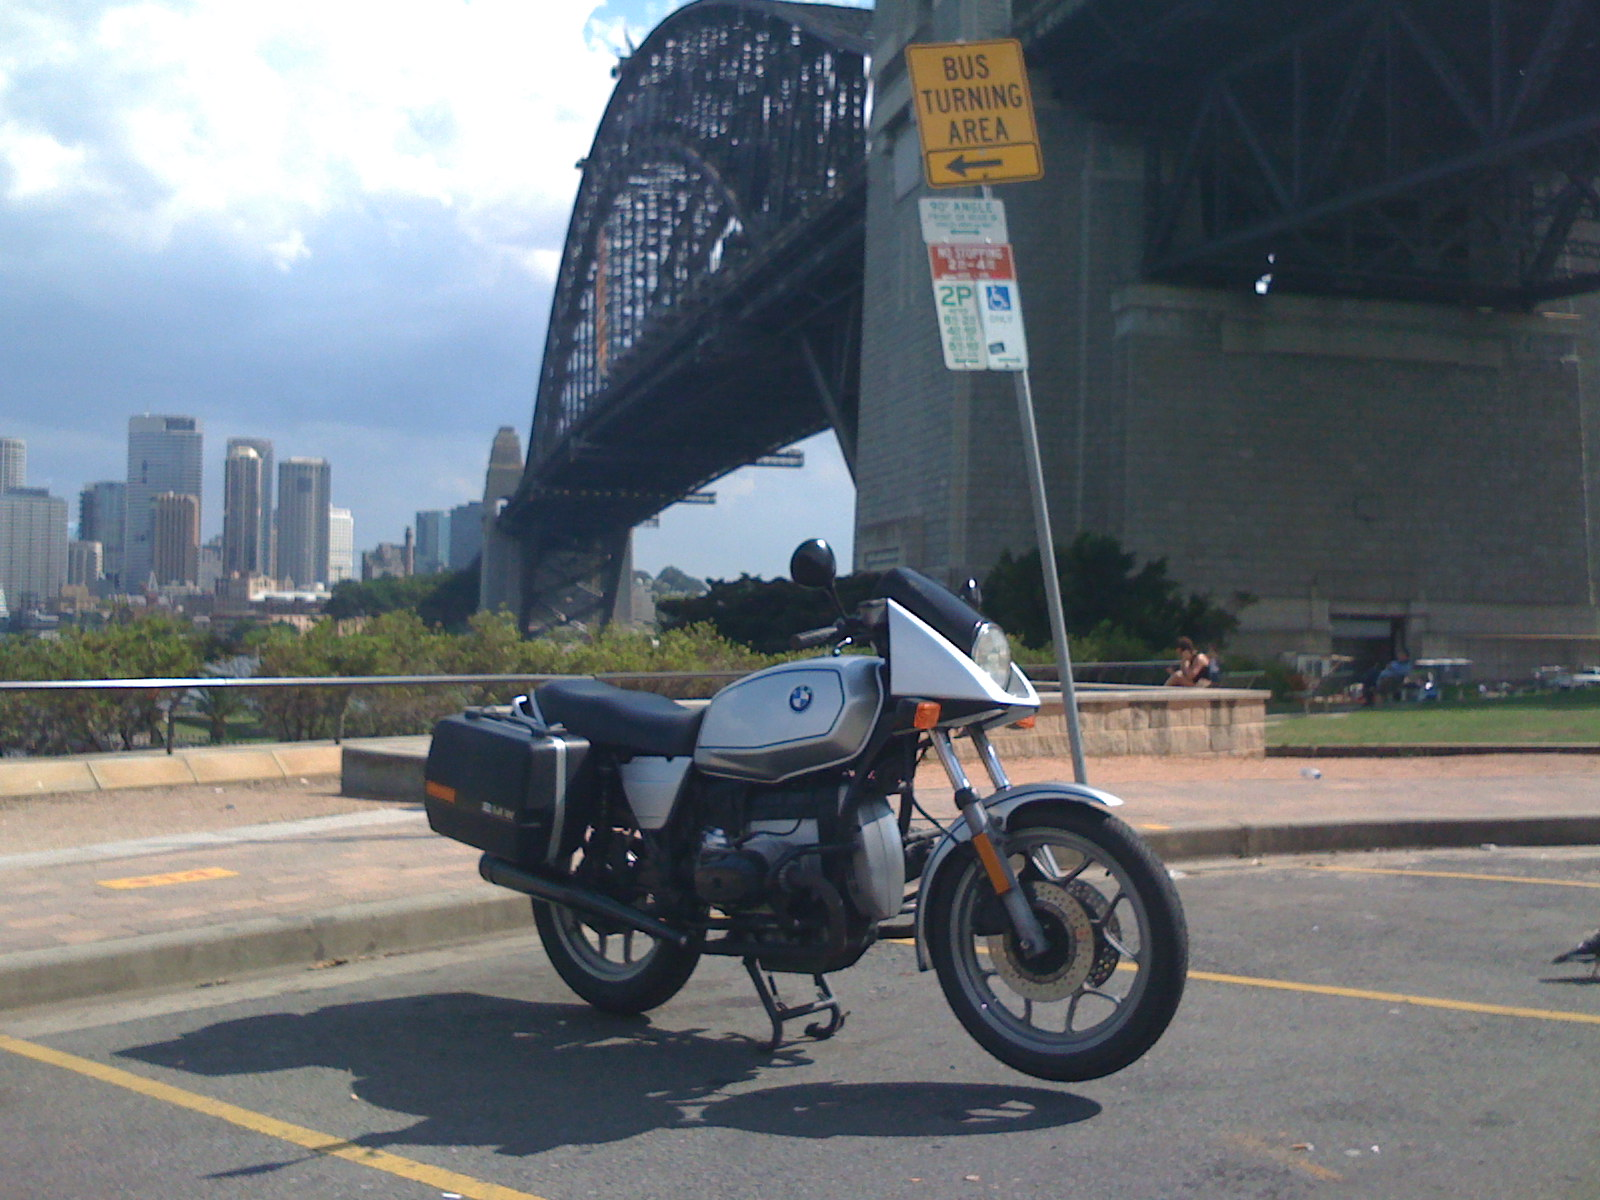 Here the R65LS has the Harbour Bridge in the background. Shows off the triangular pod fairing on the LS nicely.